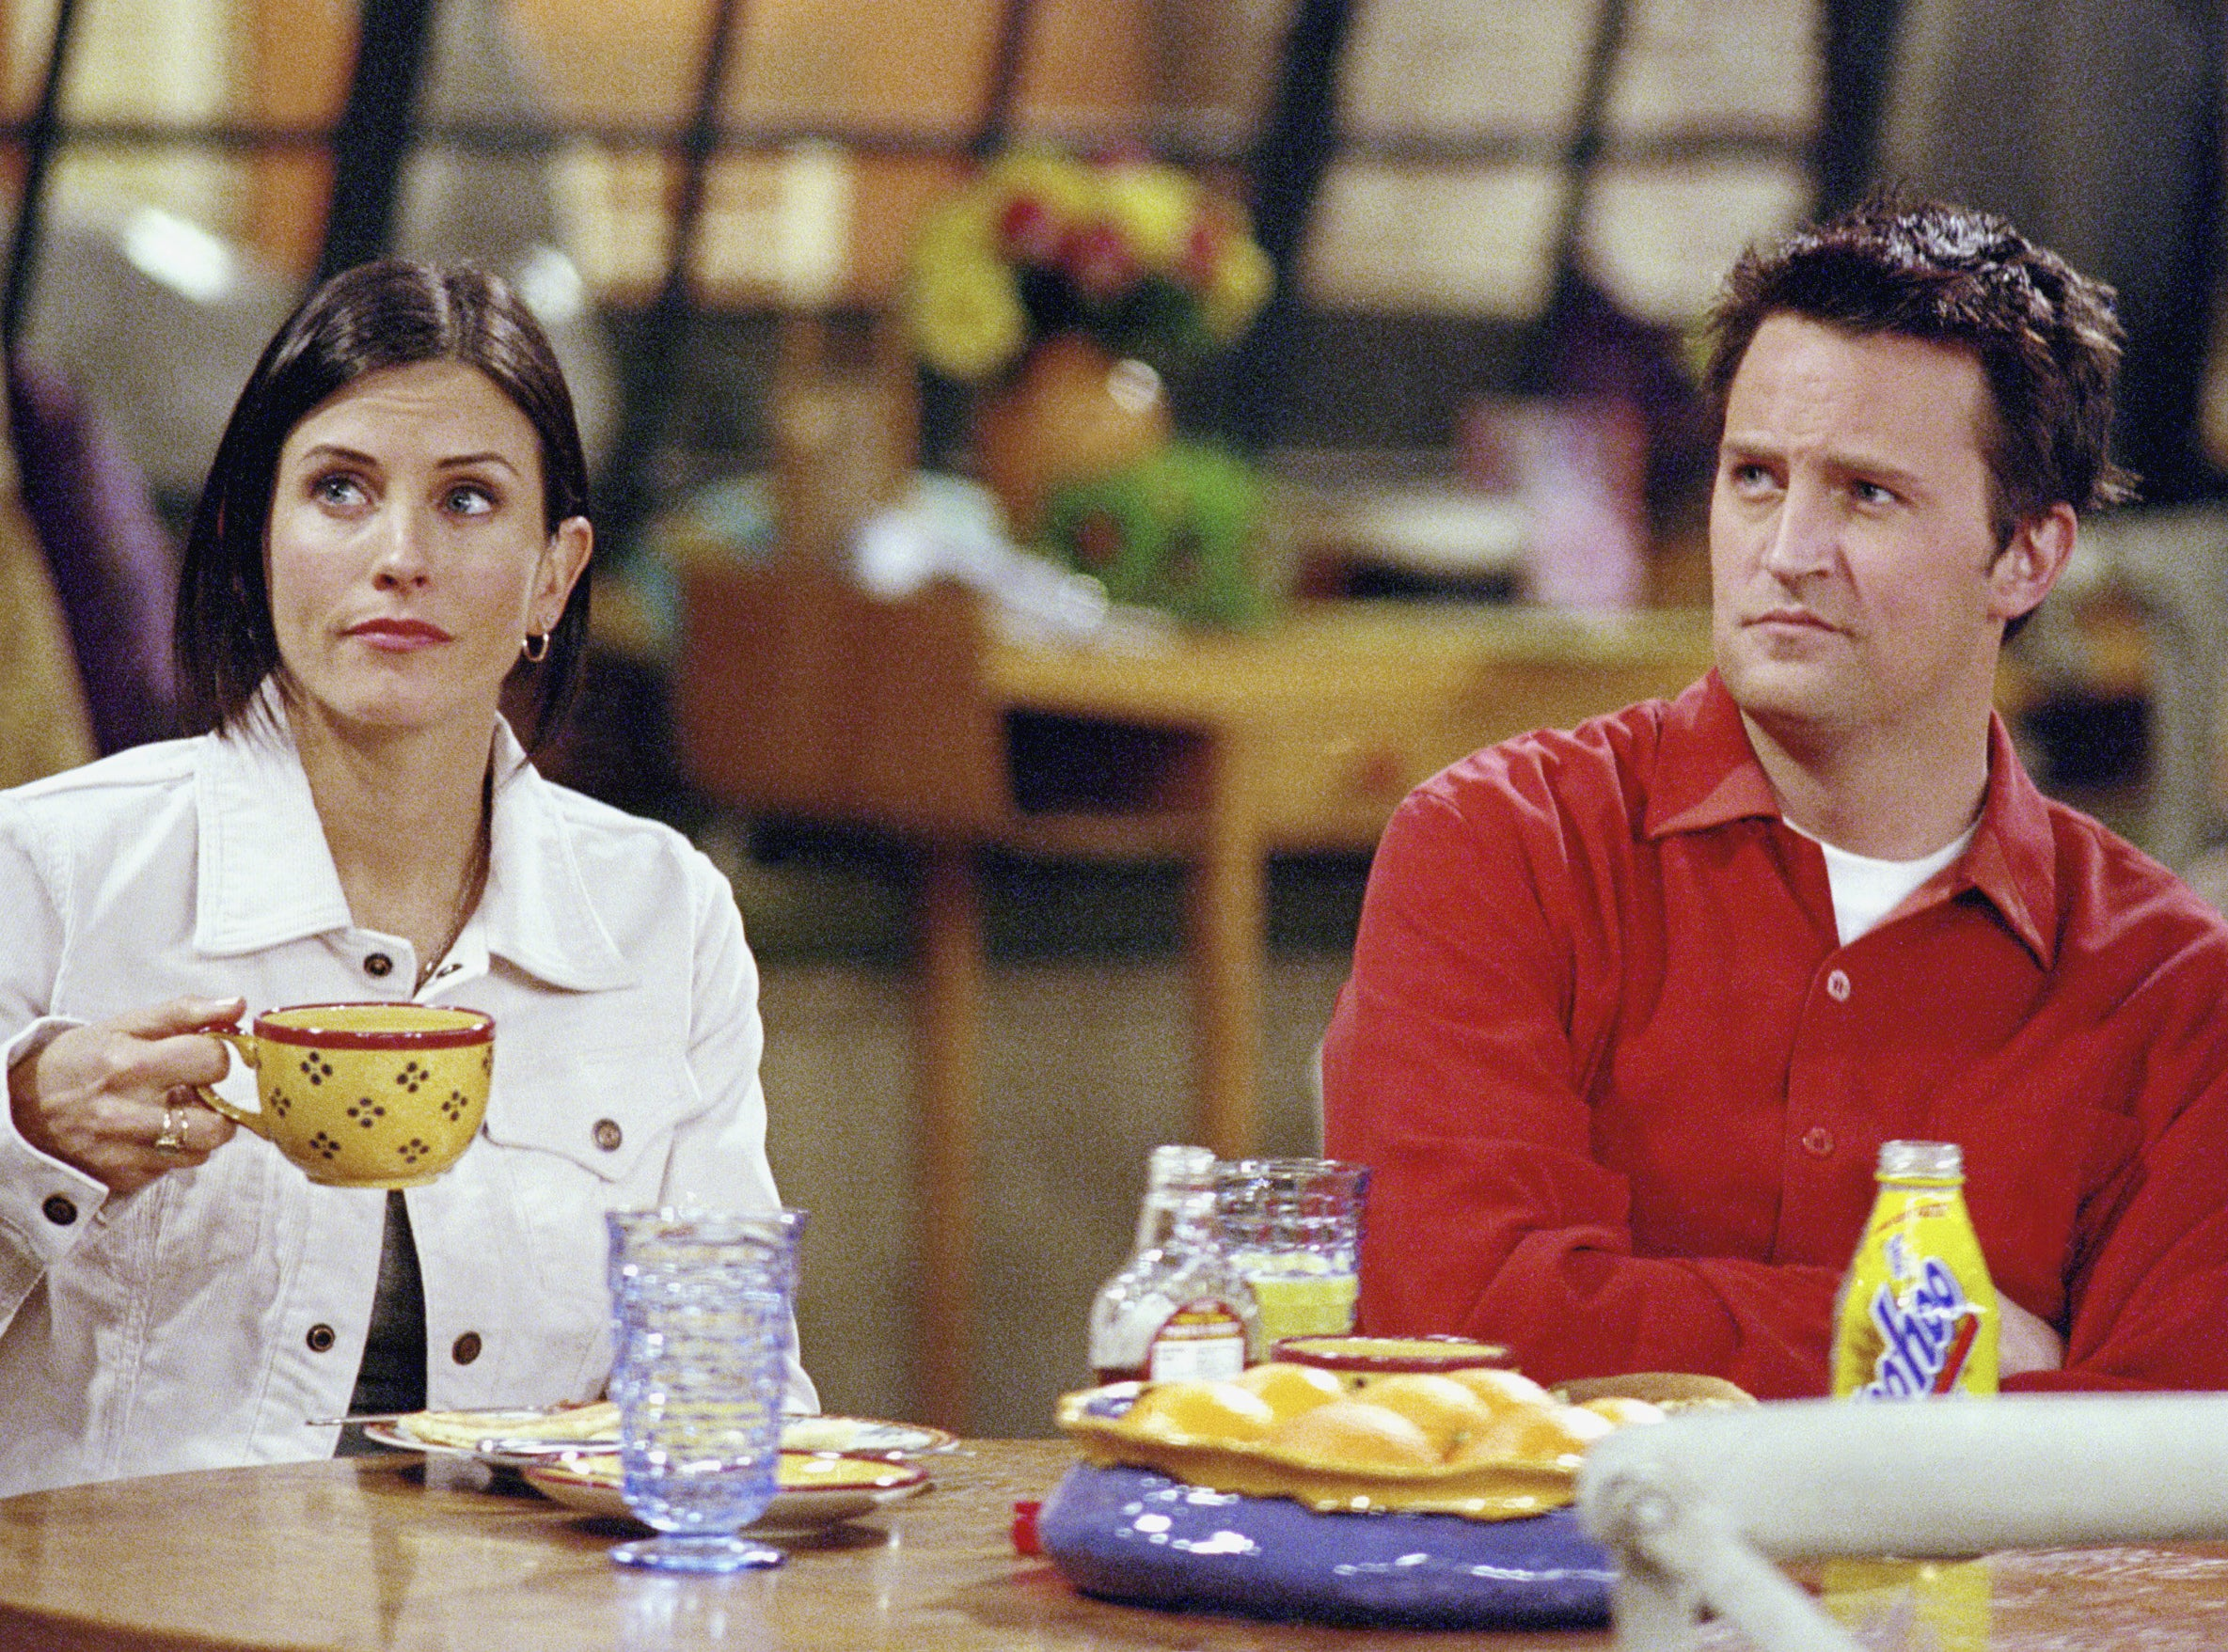 Matthew andCourteney Cox sit at the kitchen table on Friends